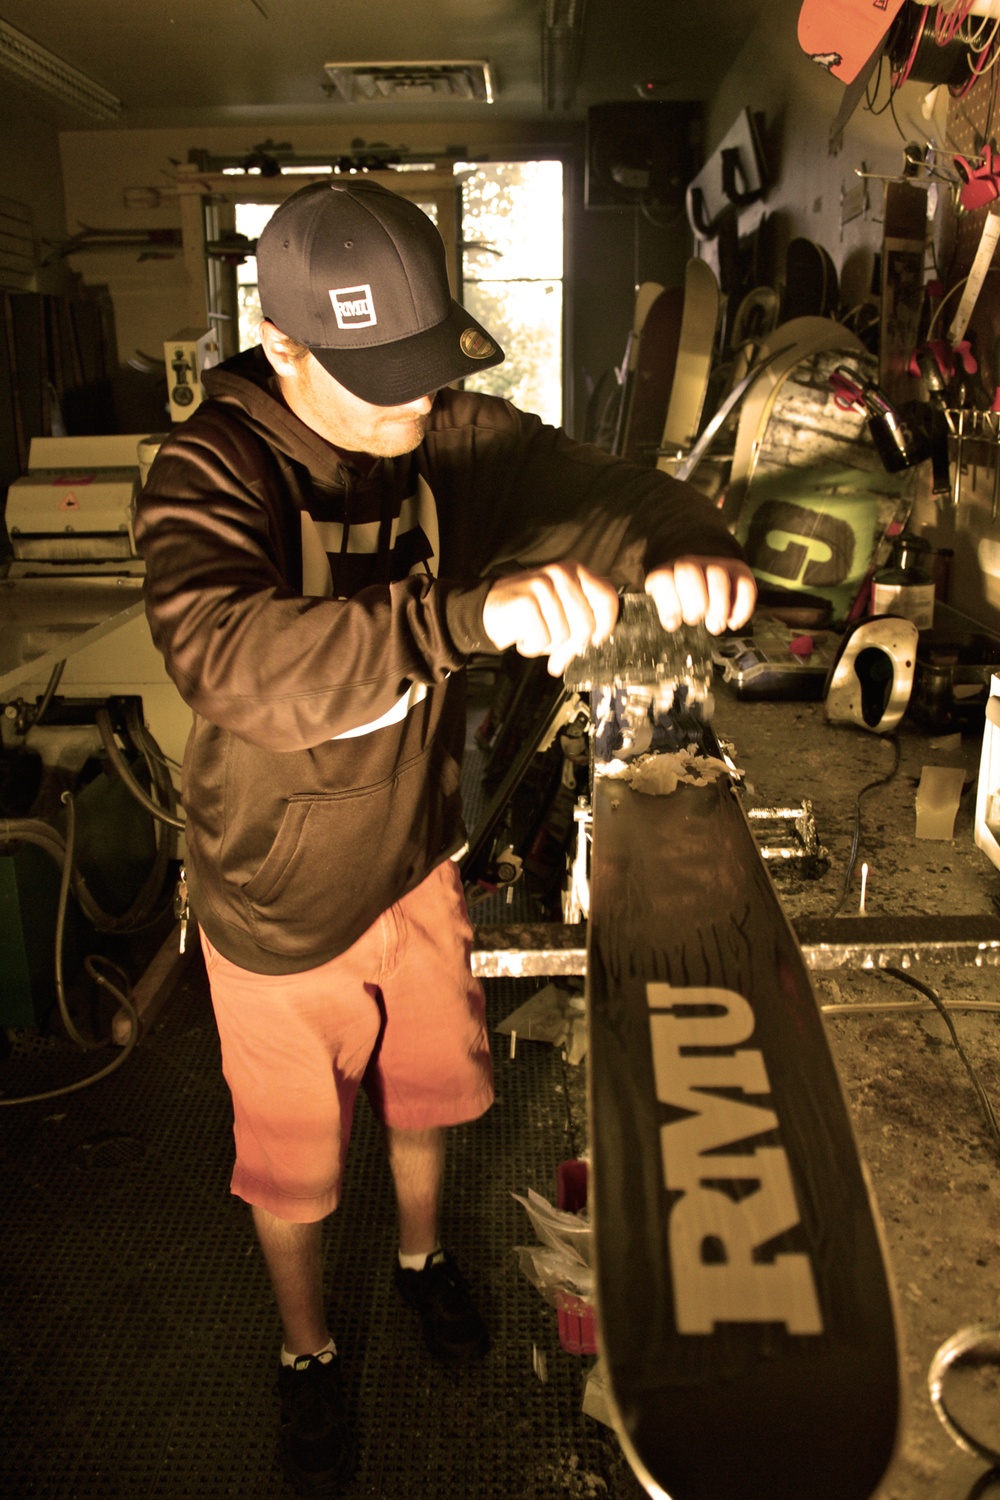 scraping-skis.jpg